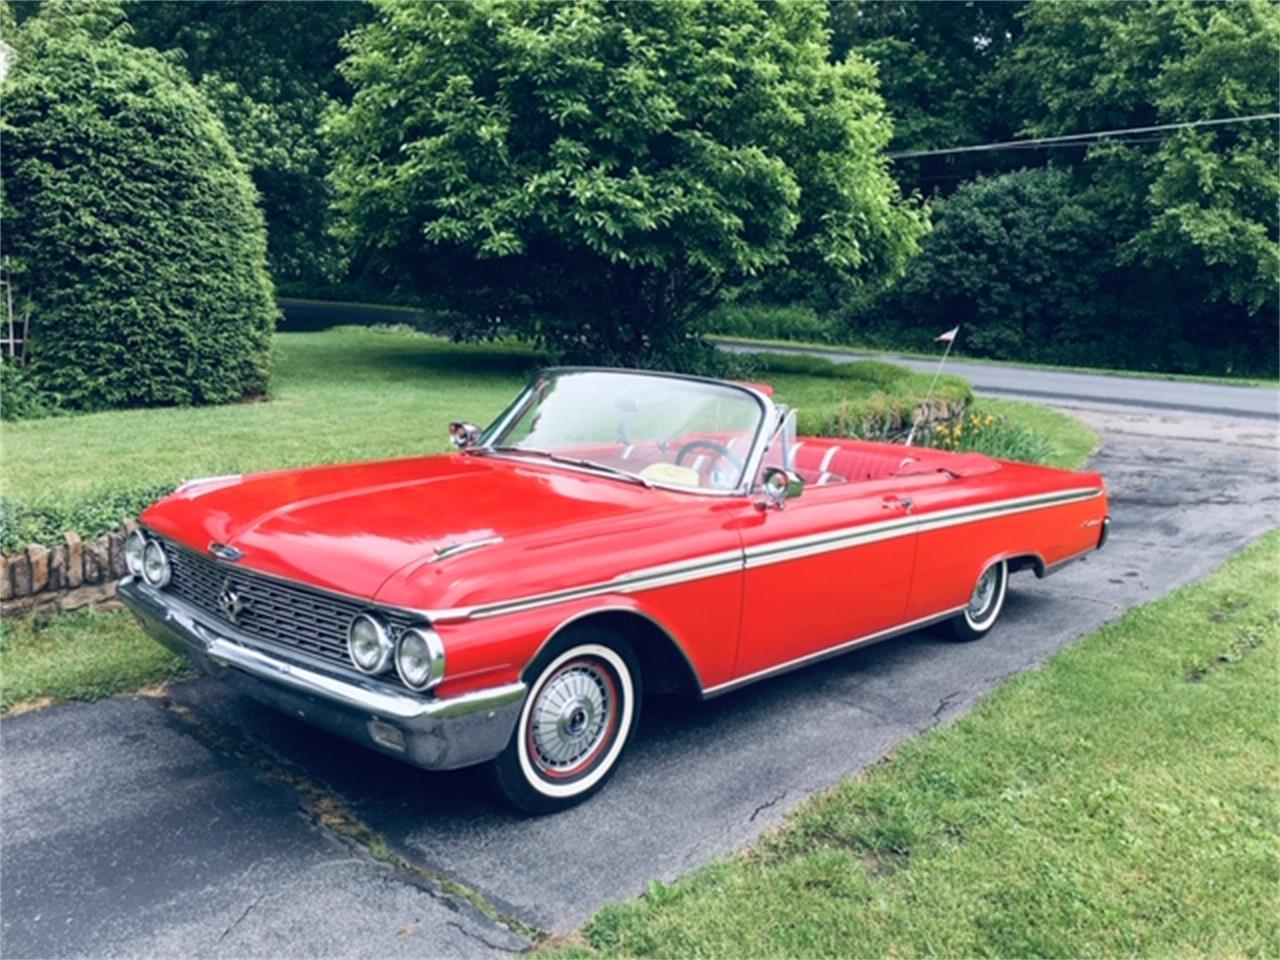 1962 Ford Galaxie 500 Sunliner (CC-1224129) for sale in Johnstown, Pennsylvania